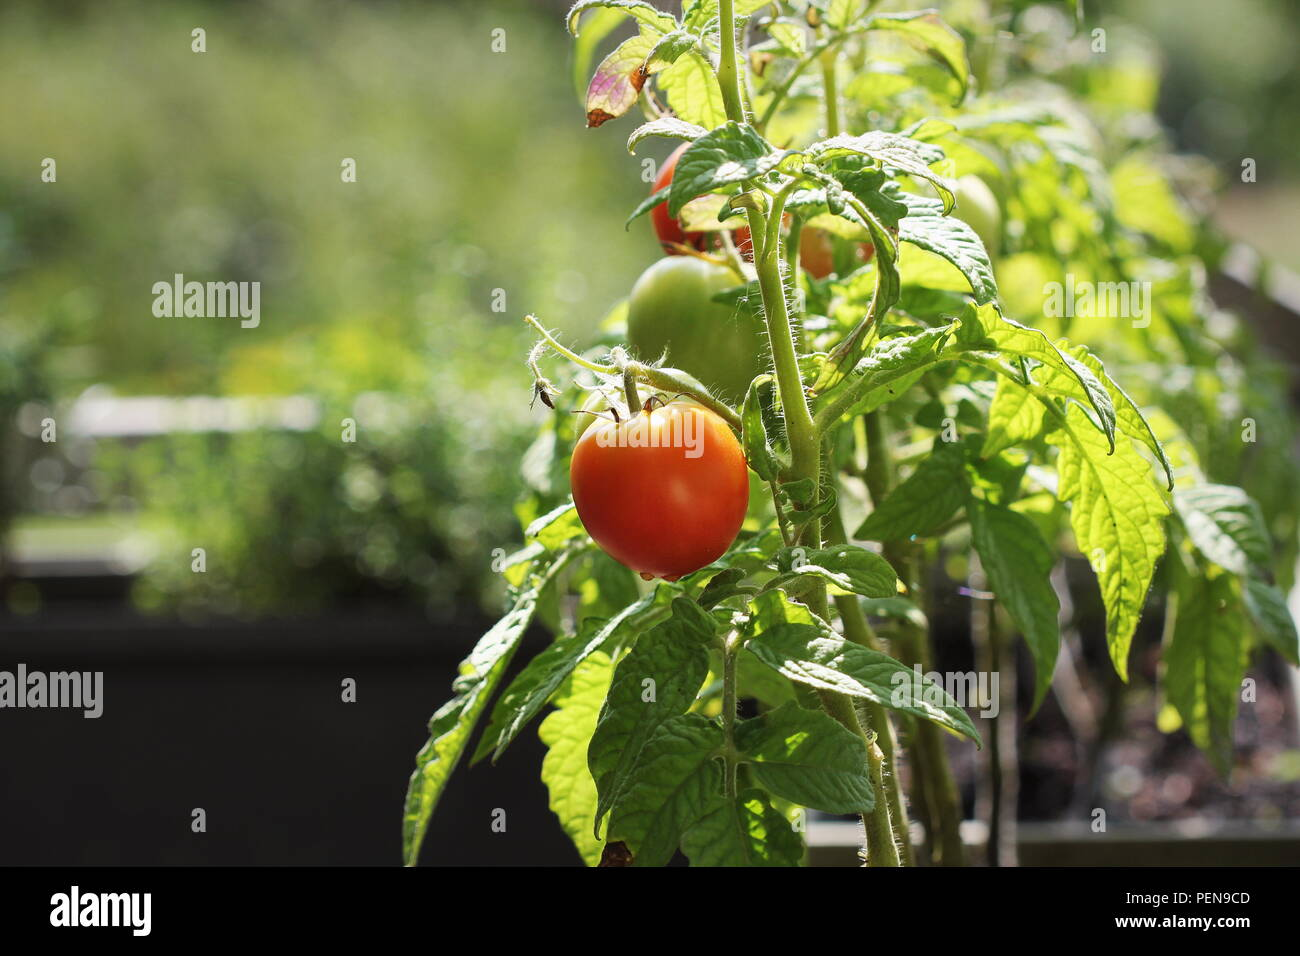 Container vegetables gardening. Vegetable garden on a terrace. Herbs, tomatoes growing in container - Stock Image